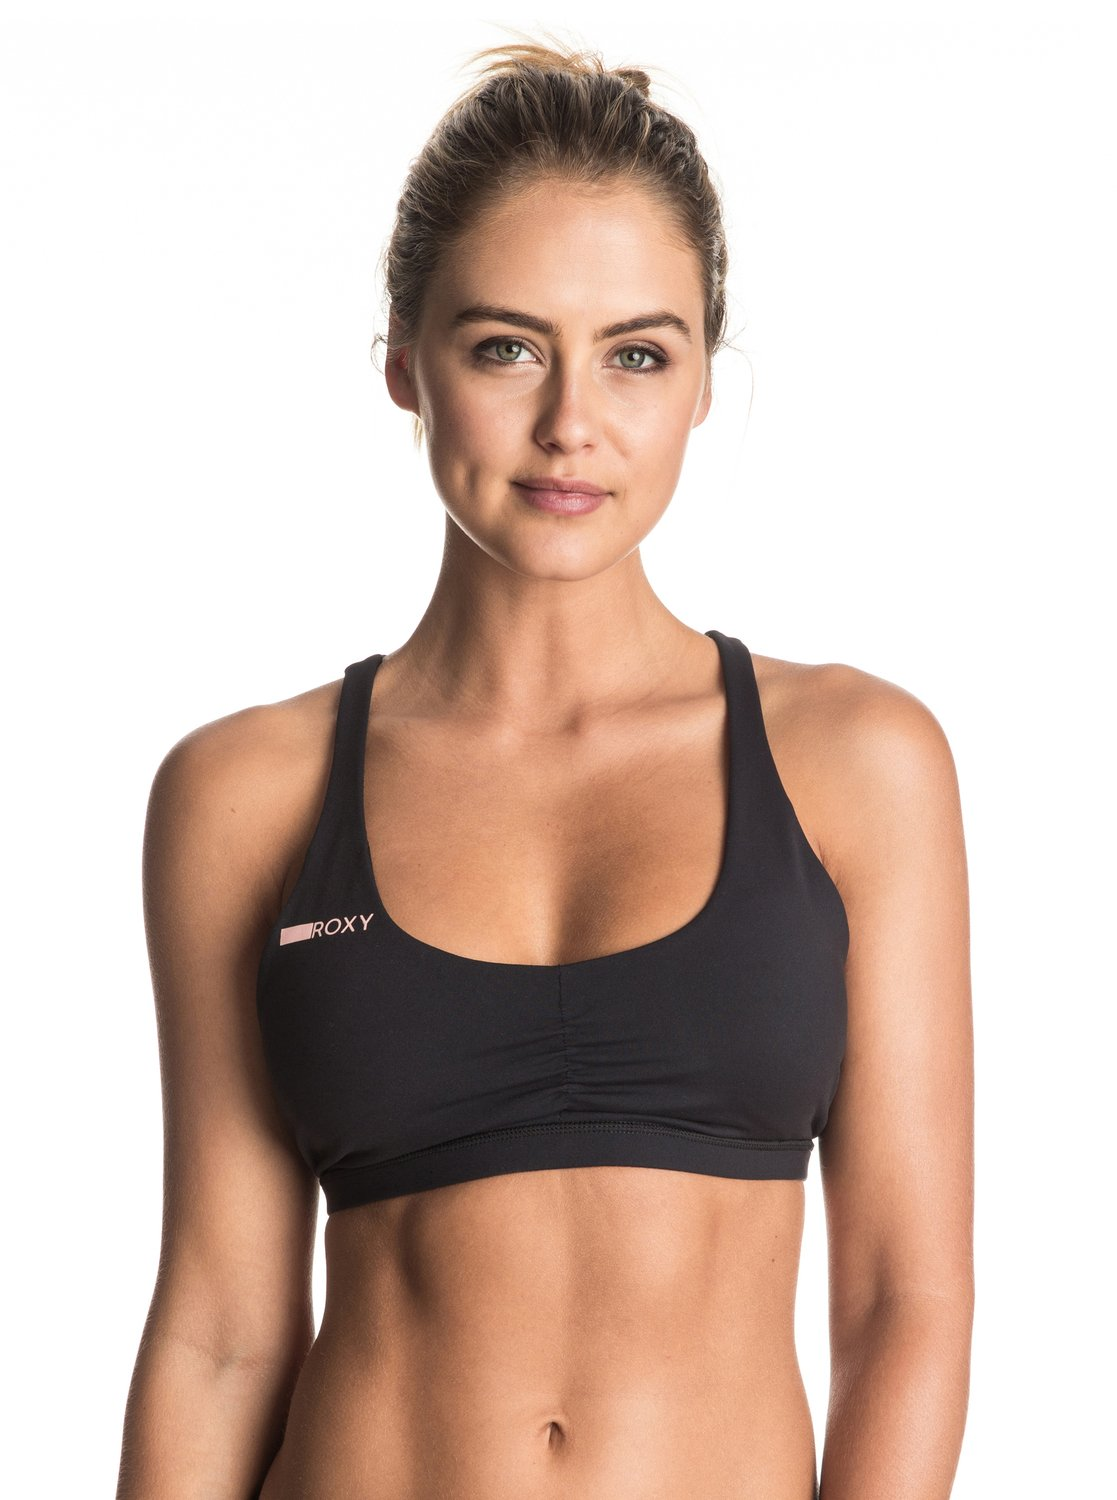 Sports bras for girls add support and protection where it's needed without excessive padding. She'll enjoy being active any time of the year with these athletic bras for girls. A must-have for any wardrobe, these important undergarments will help her hone her skills on the court, field, gym or track.